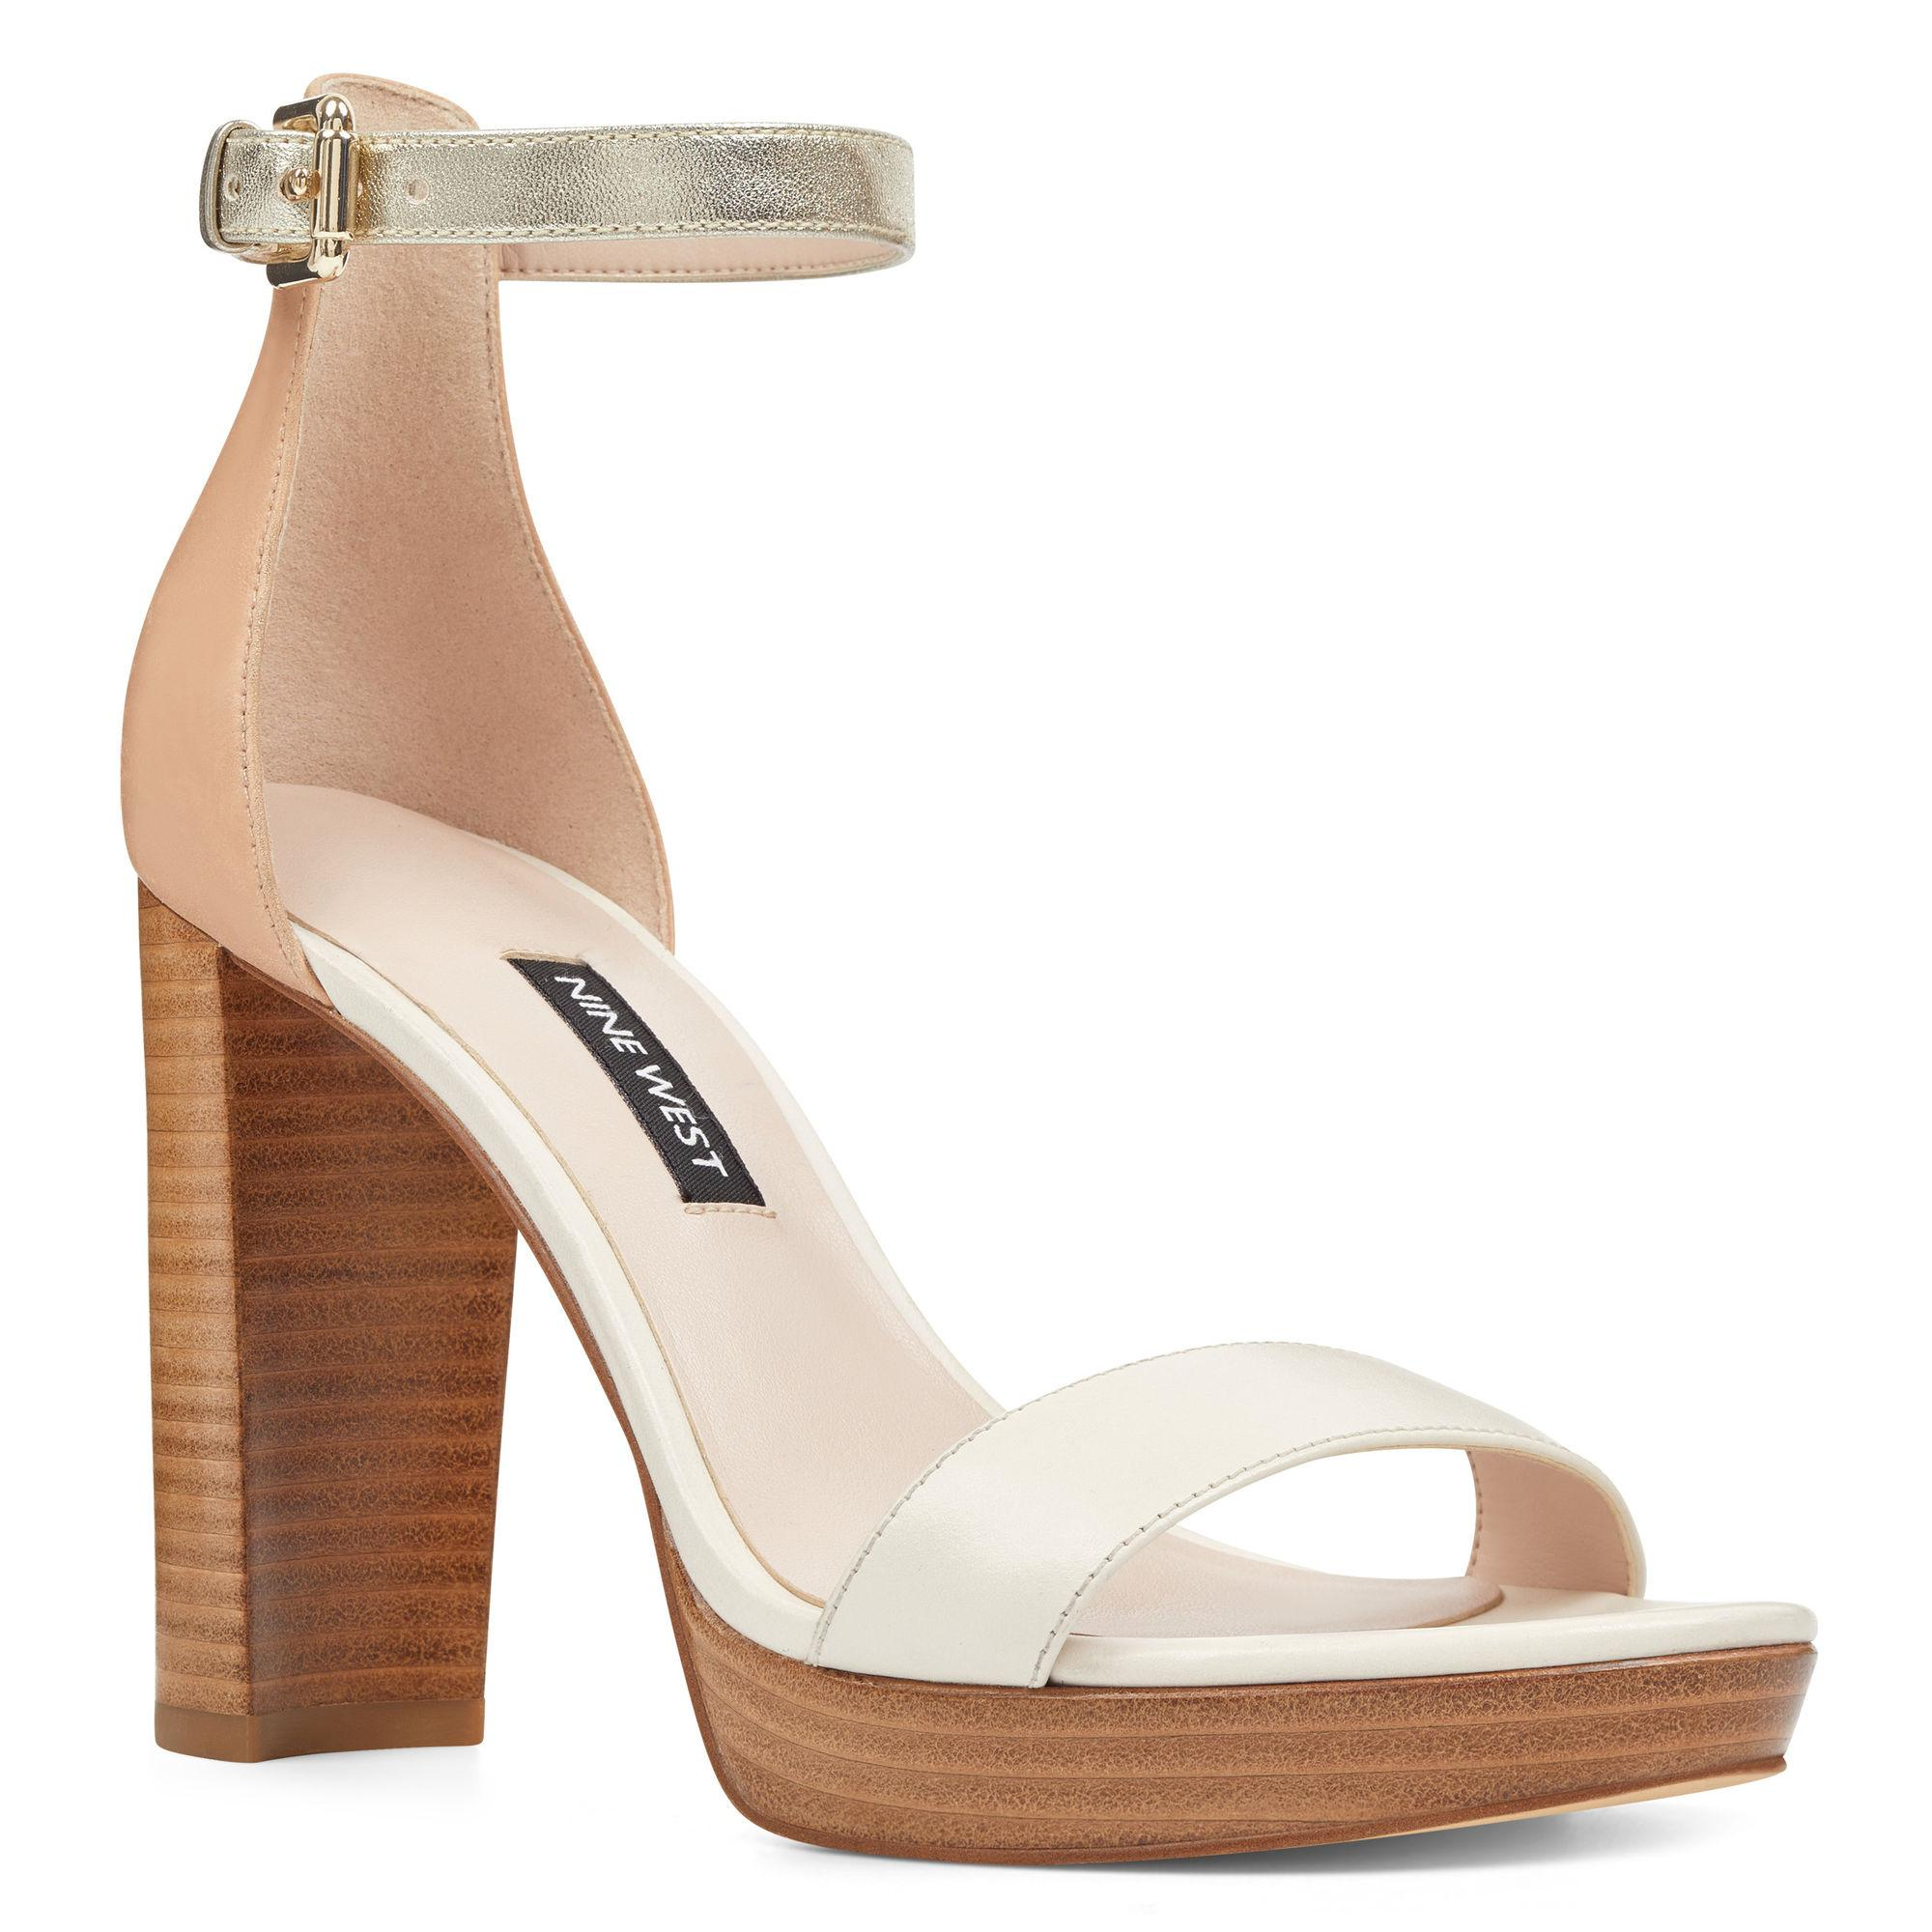 6c7e700972 Nine West Dempsey Open Toe Sandals in Natural - Lyst